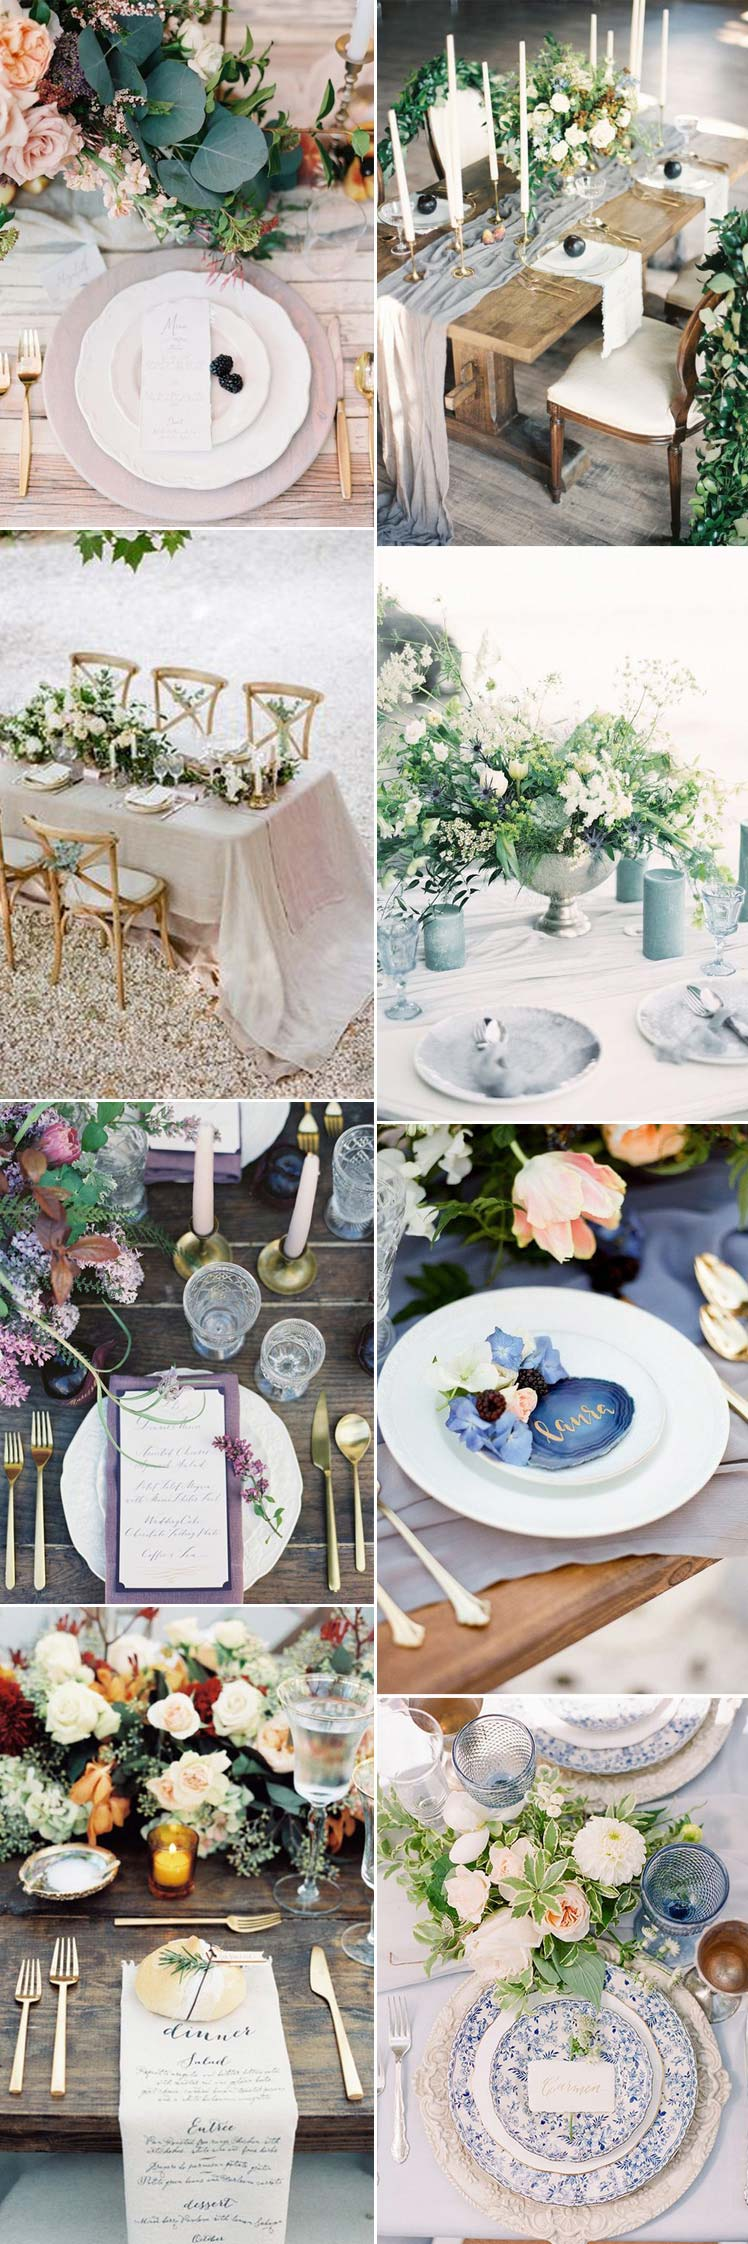 beautifully romantic wedding tablescapes